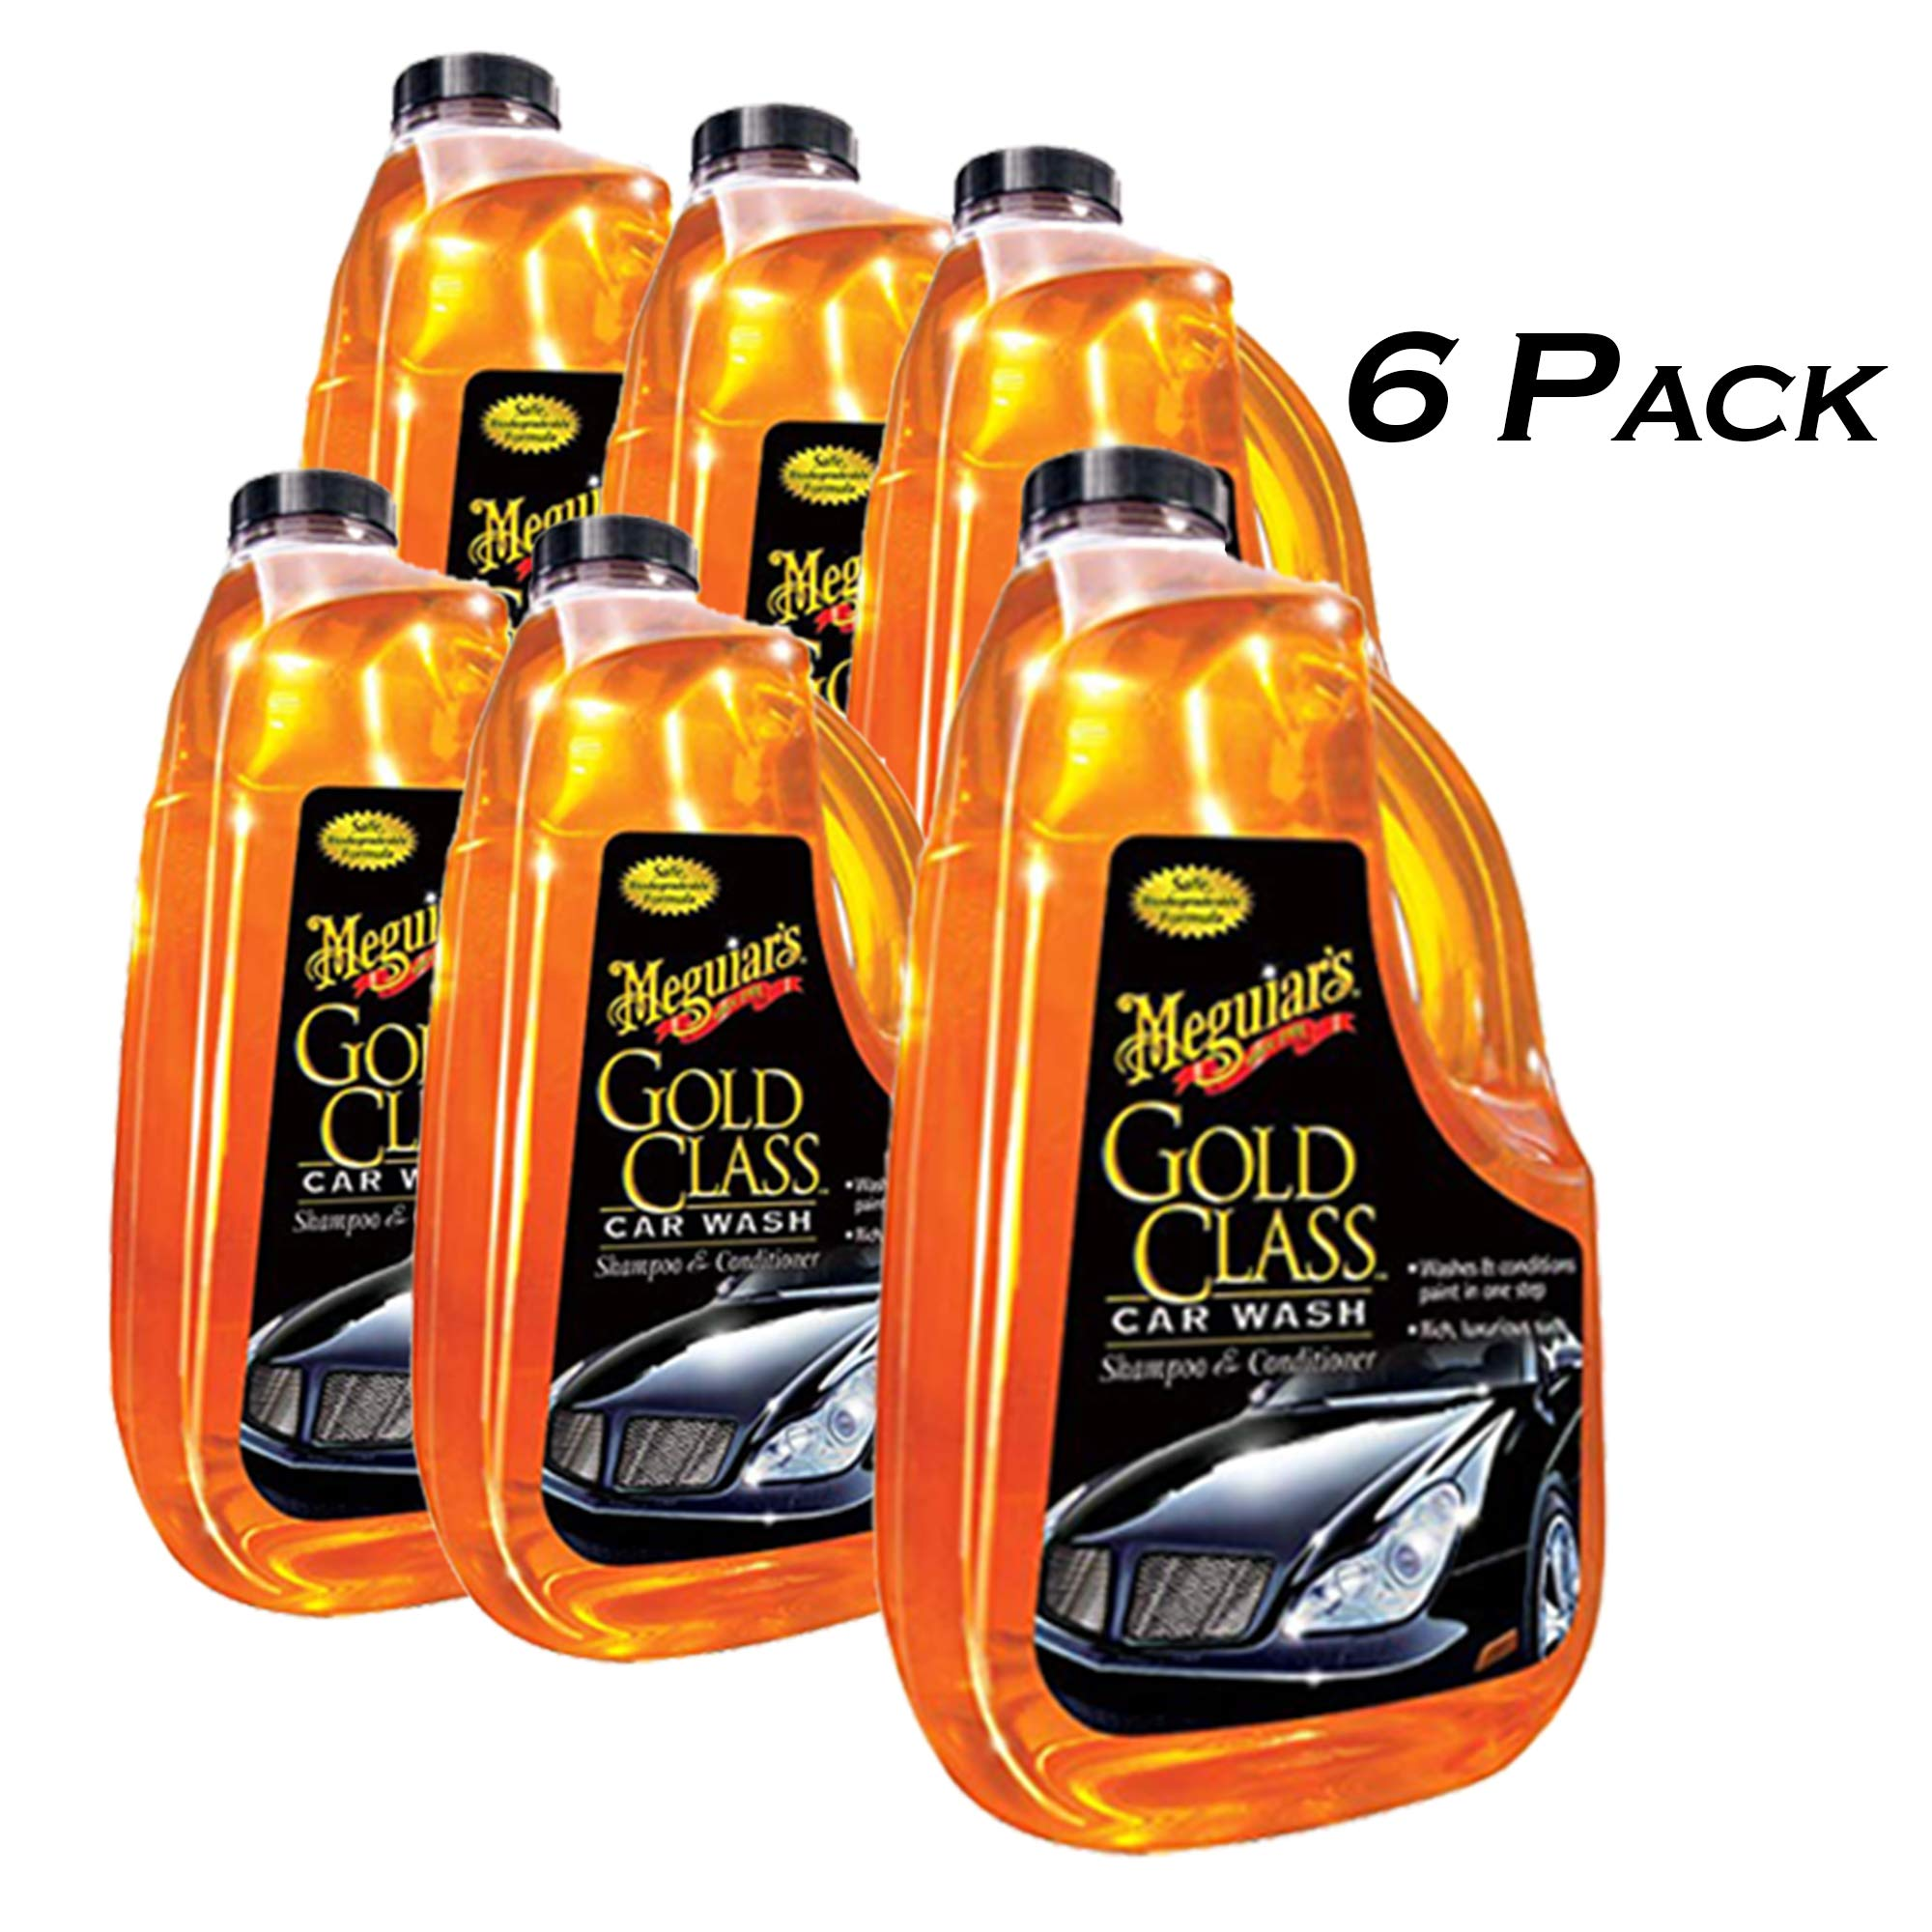 Meguiars G7164 Gold Class Car Washer or Washing & Conditioner, 64-oz. - 6 Pack